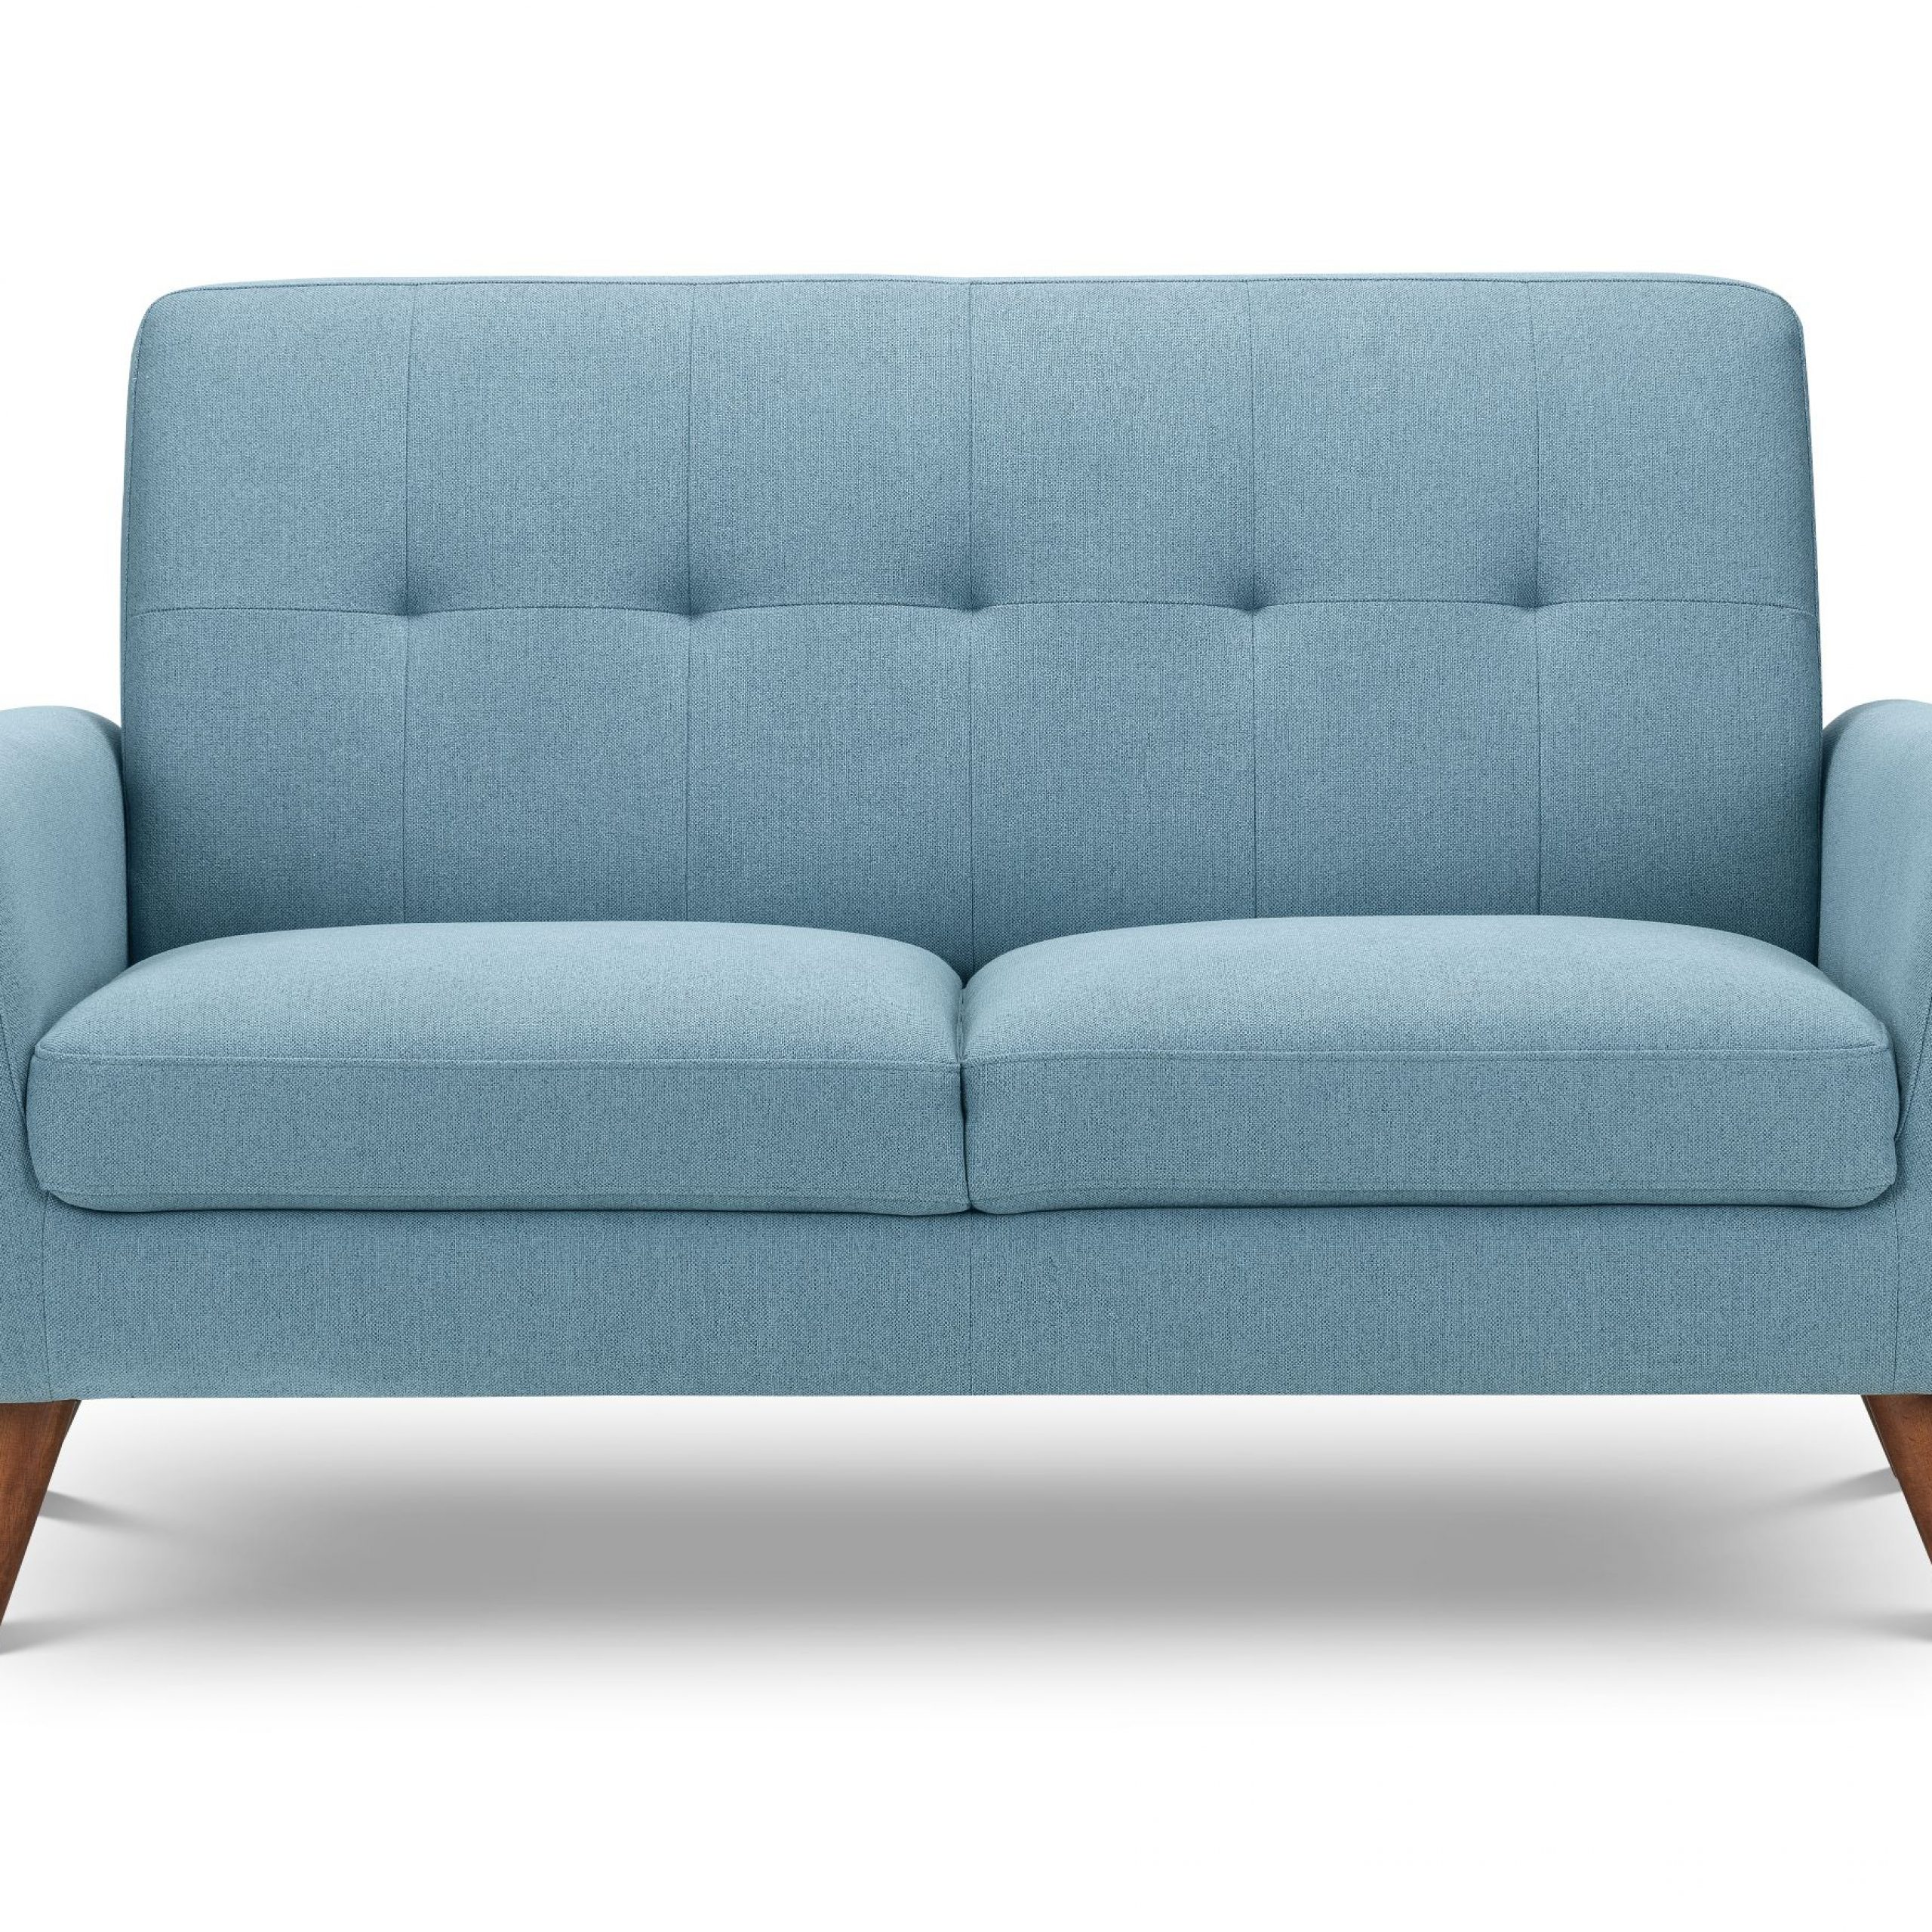 Monza 2 Seater Compact Retro Sofa – Blue – Flanagans Throughout Monza Tv Stands (View 16 of 20)